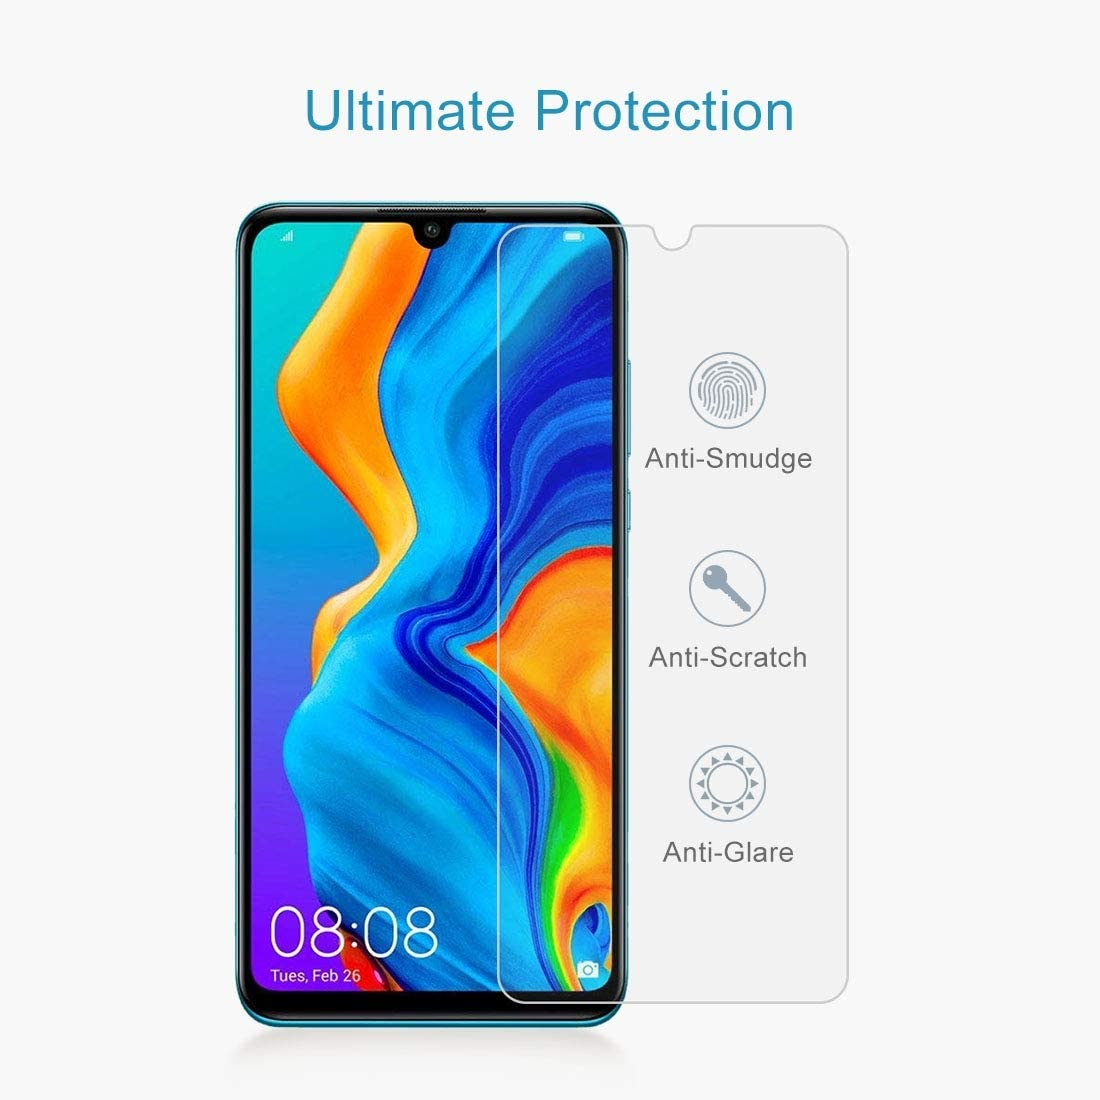 LGYD 100 PCS 0.26mm 9H 2.5D Tempered Glass Film for Huawei P30 Lite